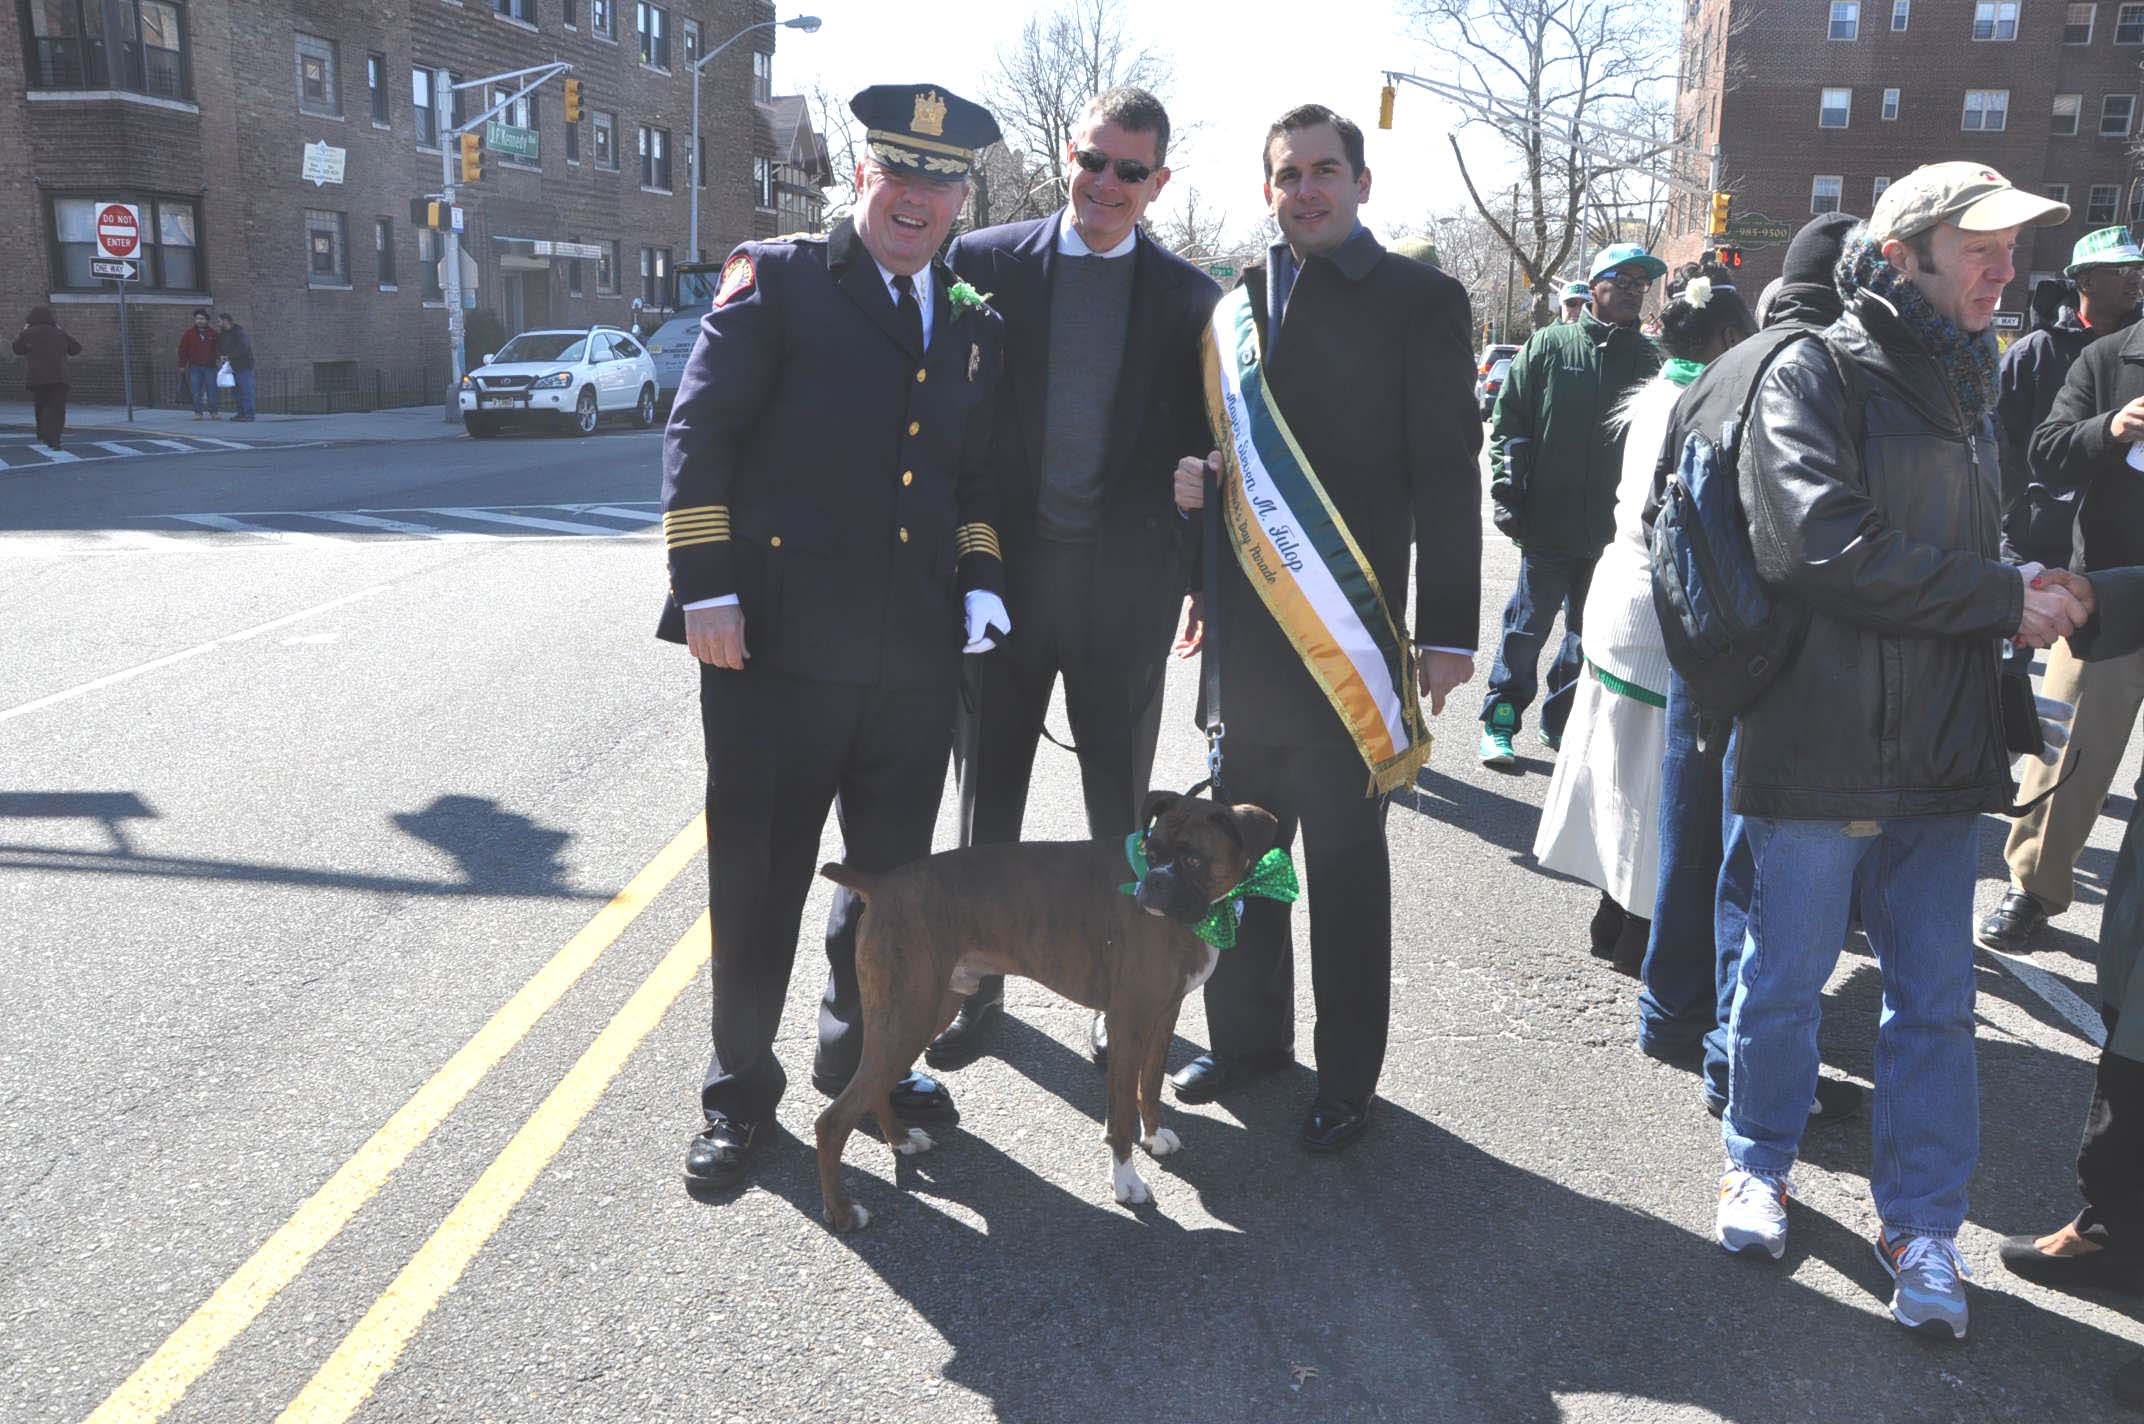 Former Chief Cowan with Jersey City Mayor Steven Fulop and Public Safety Director Jim Shea at the March 16th 2014 St. Patrick Day Parade.